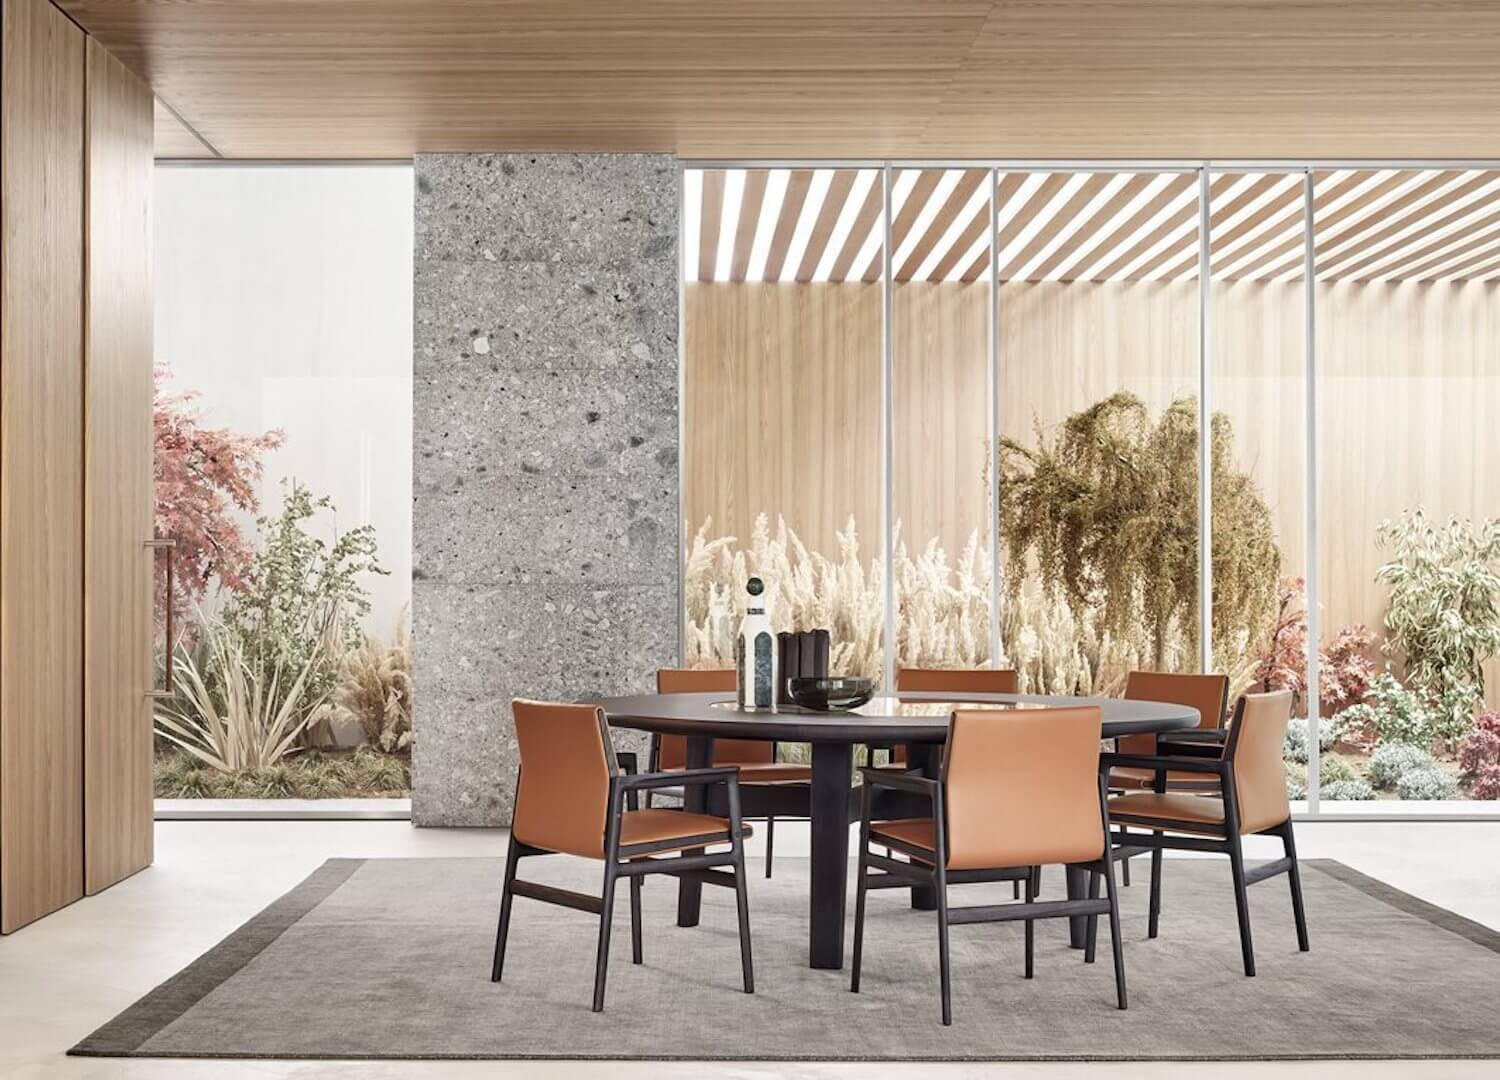 est living poliform dining home hotel ipanema chairs 1 copy